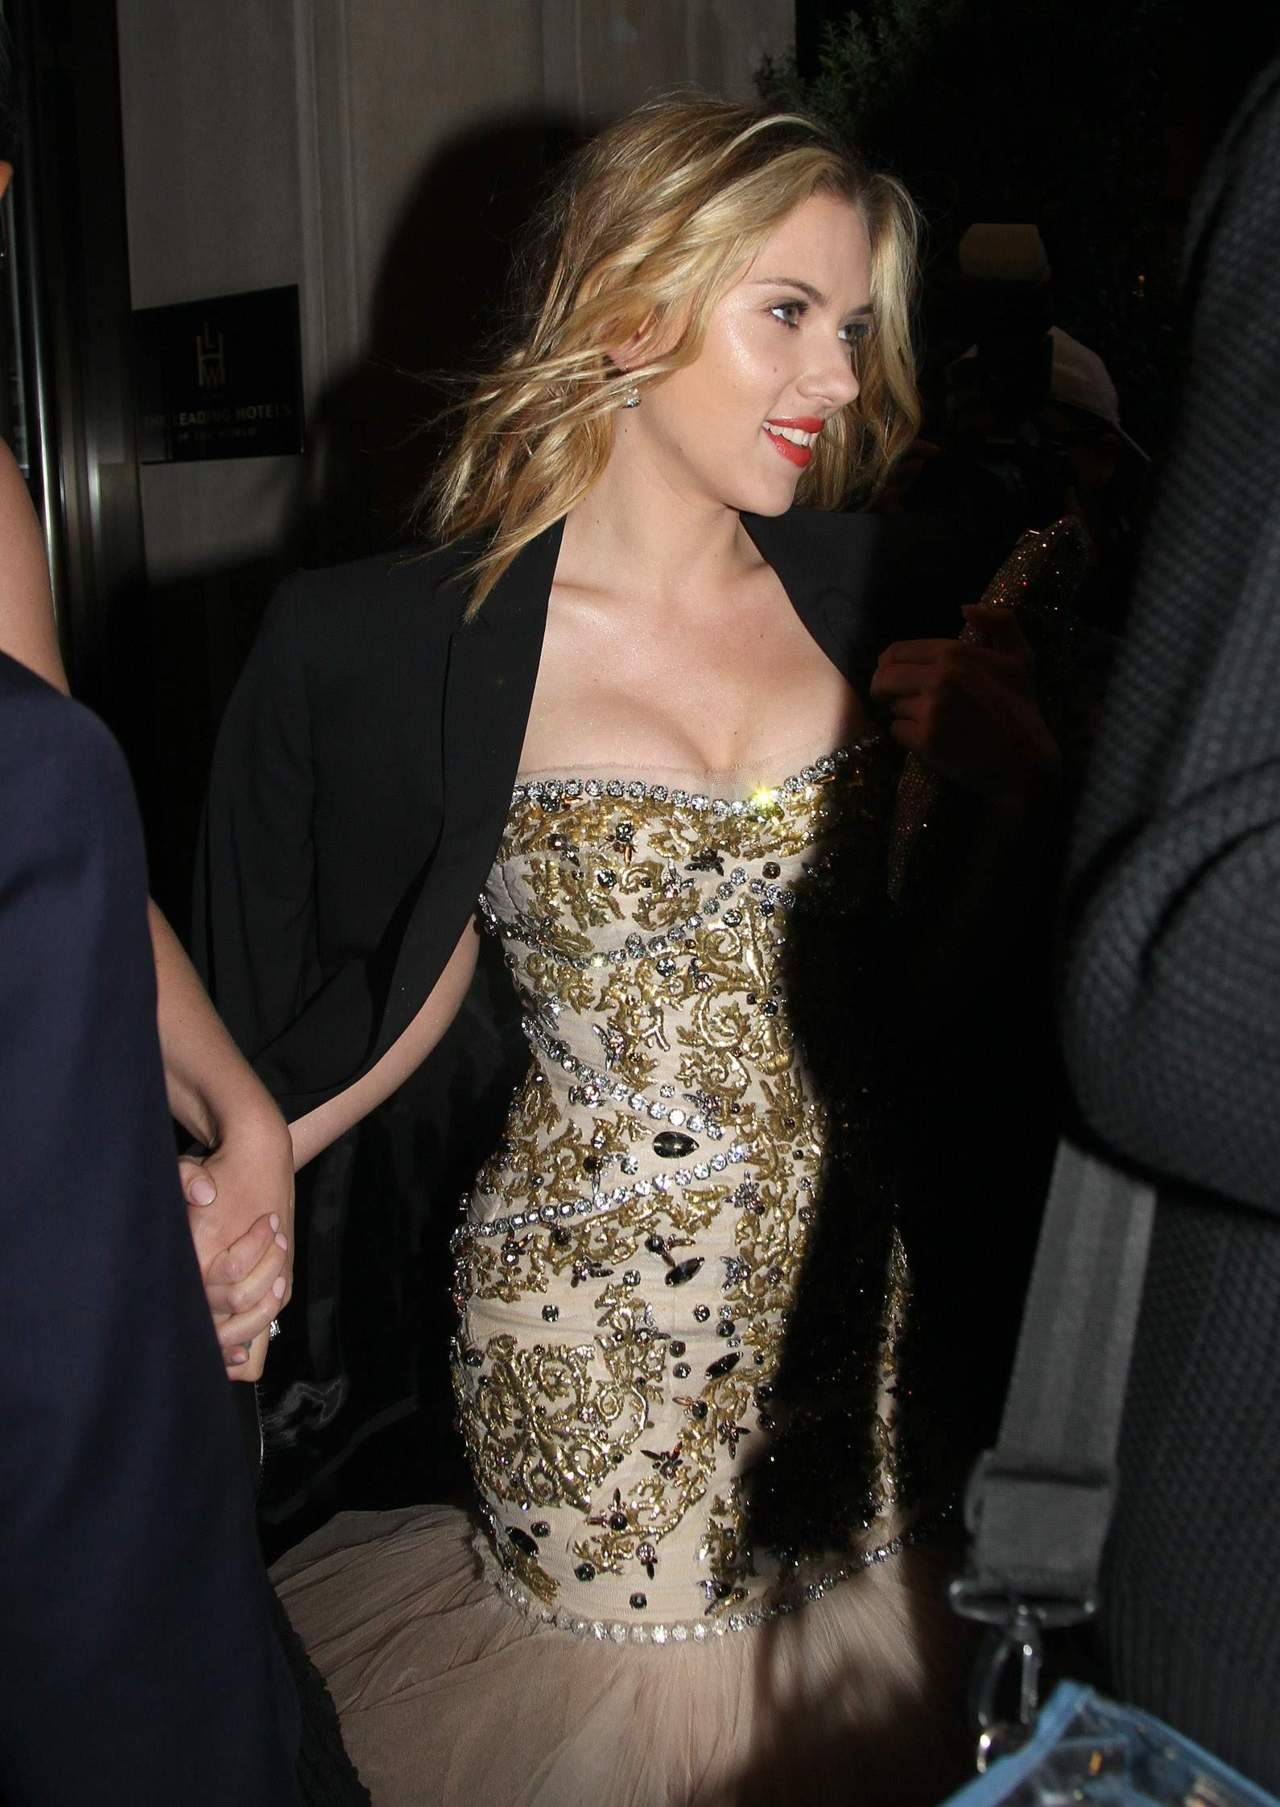 suicideblonde:  Scarlett Johansson leaving her hotel in NYC, May 7th  BOSOM SPACE!